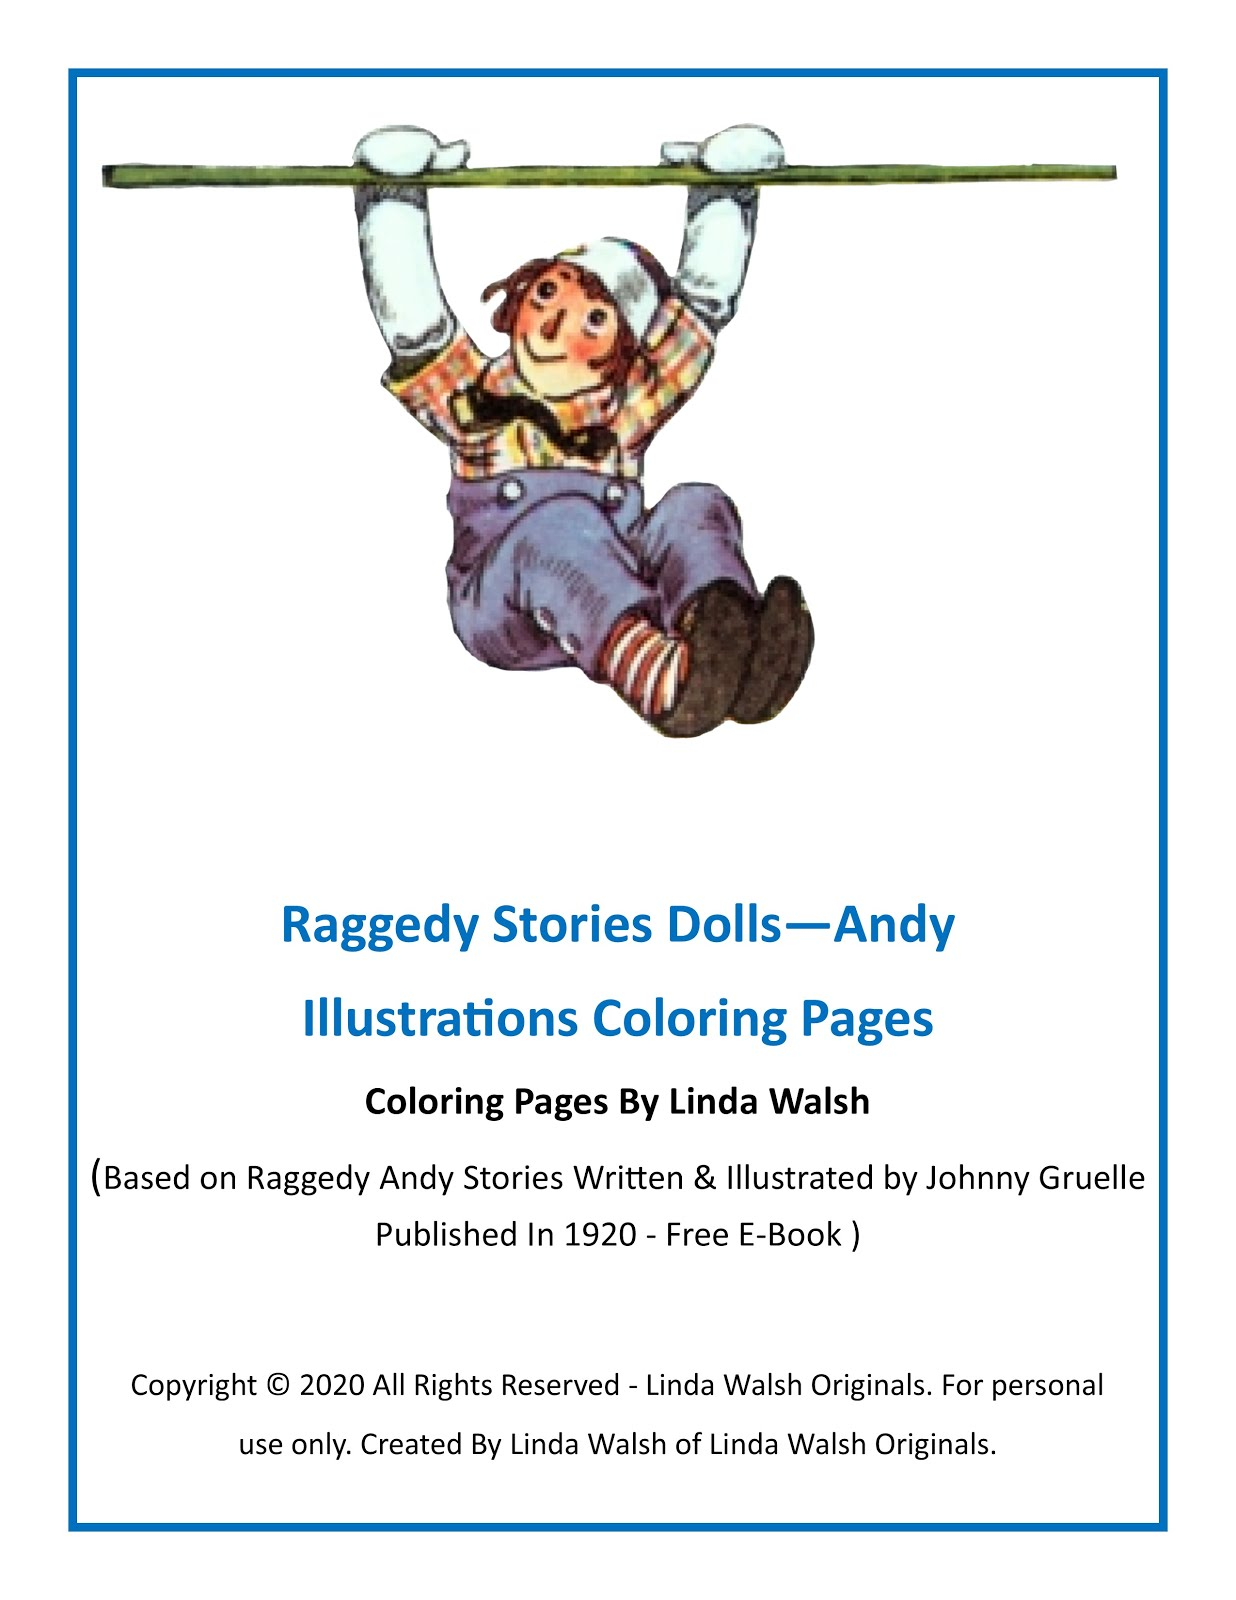 Raggedy Stories Dolls - Andy Illustrations Coloring Pages Free E-Book